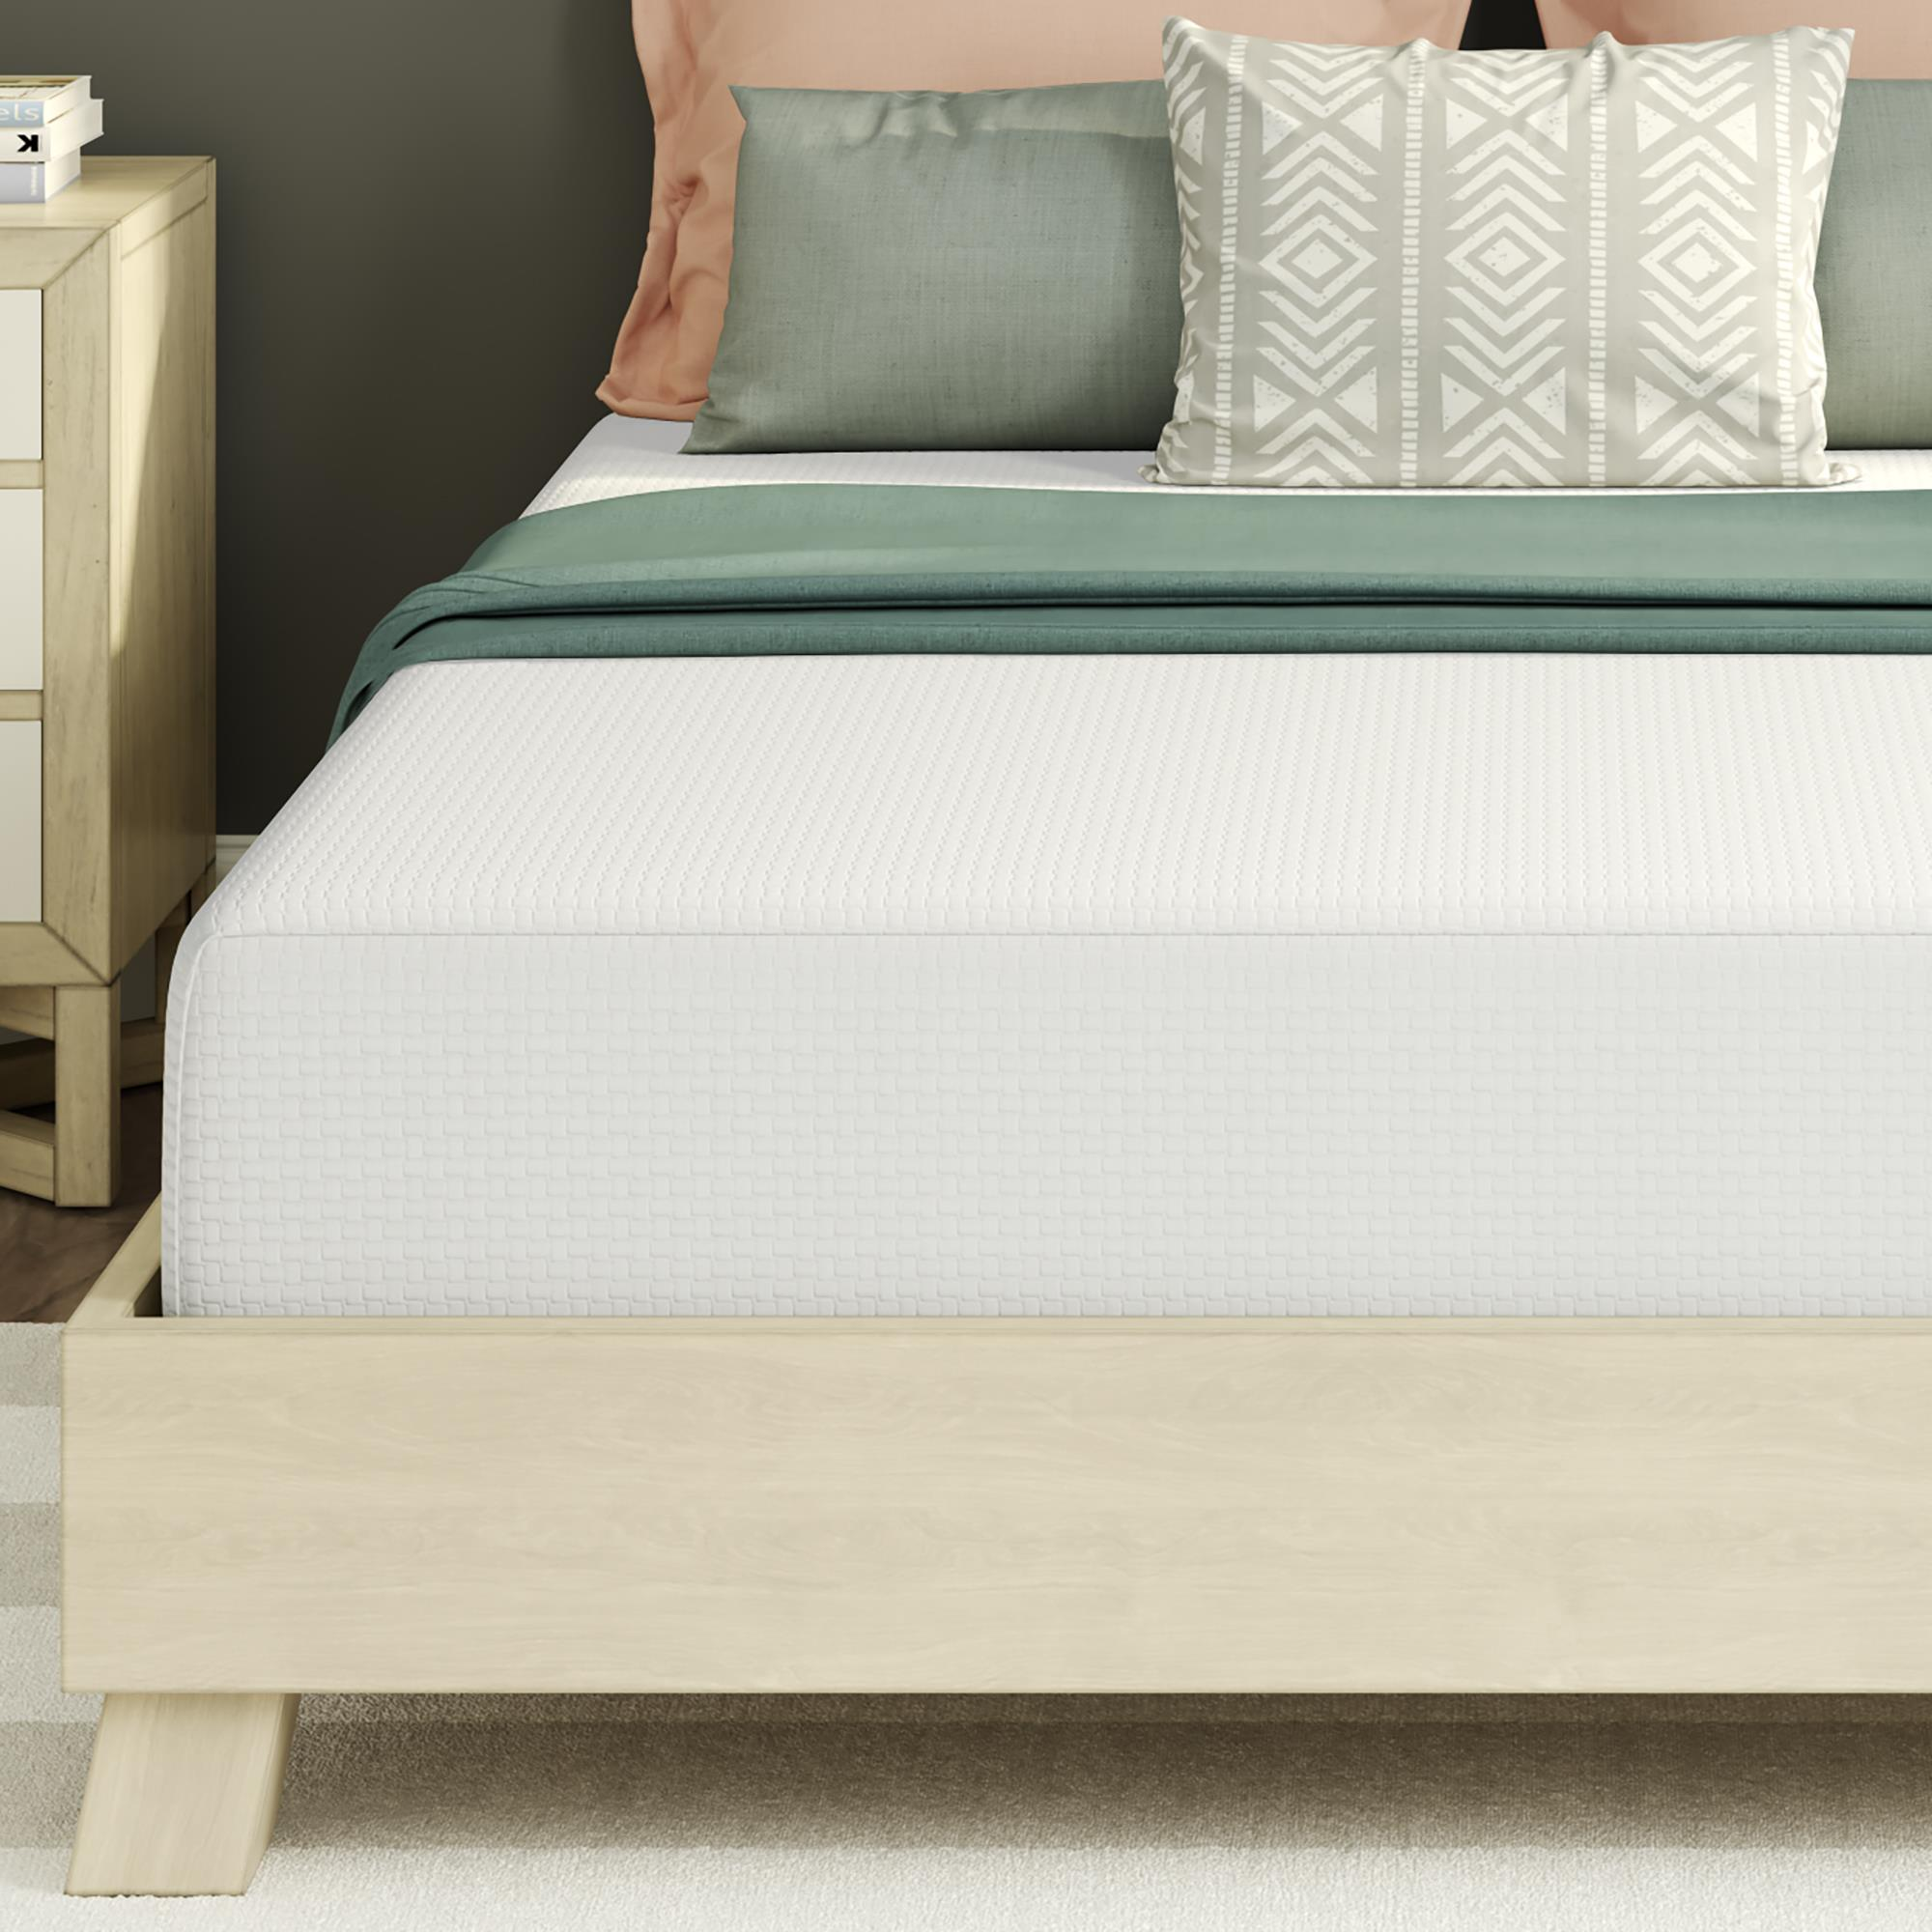 Signature Sleep Gold Inspire 12 Inch Memory Foam Mattress, CertiPUR-US by Dorel Home Products